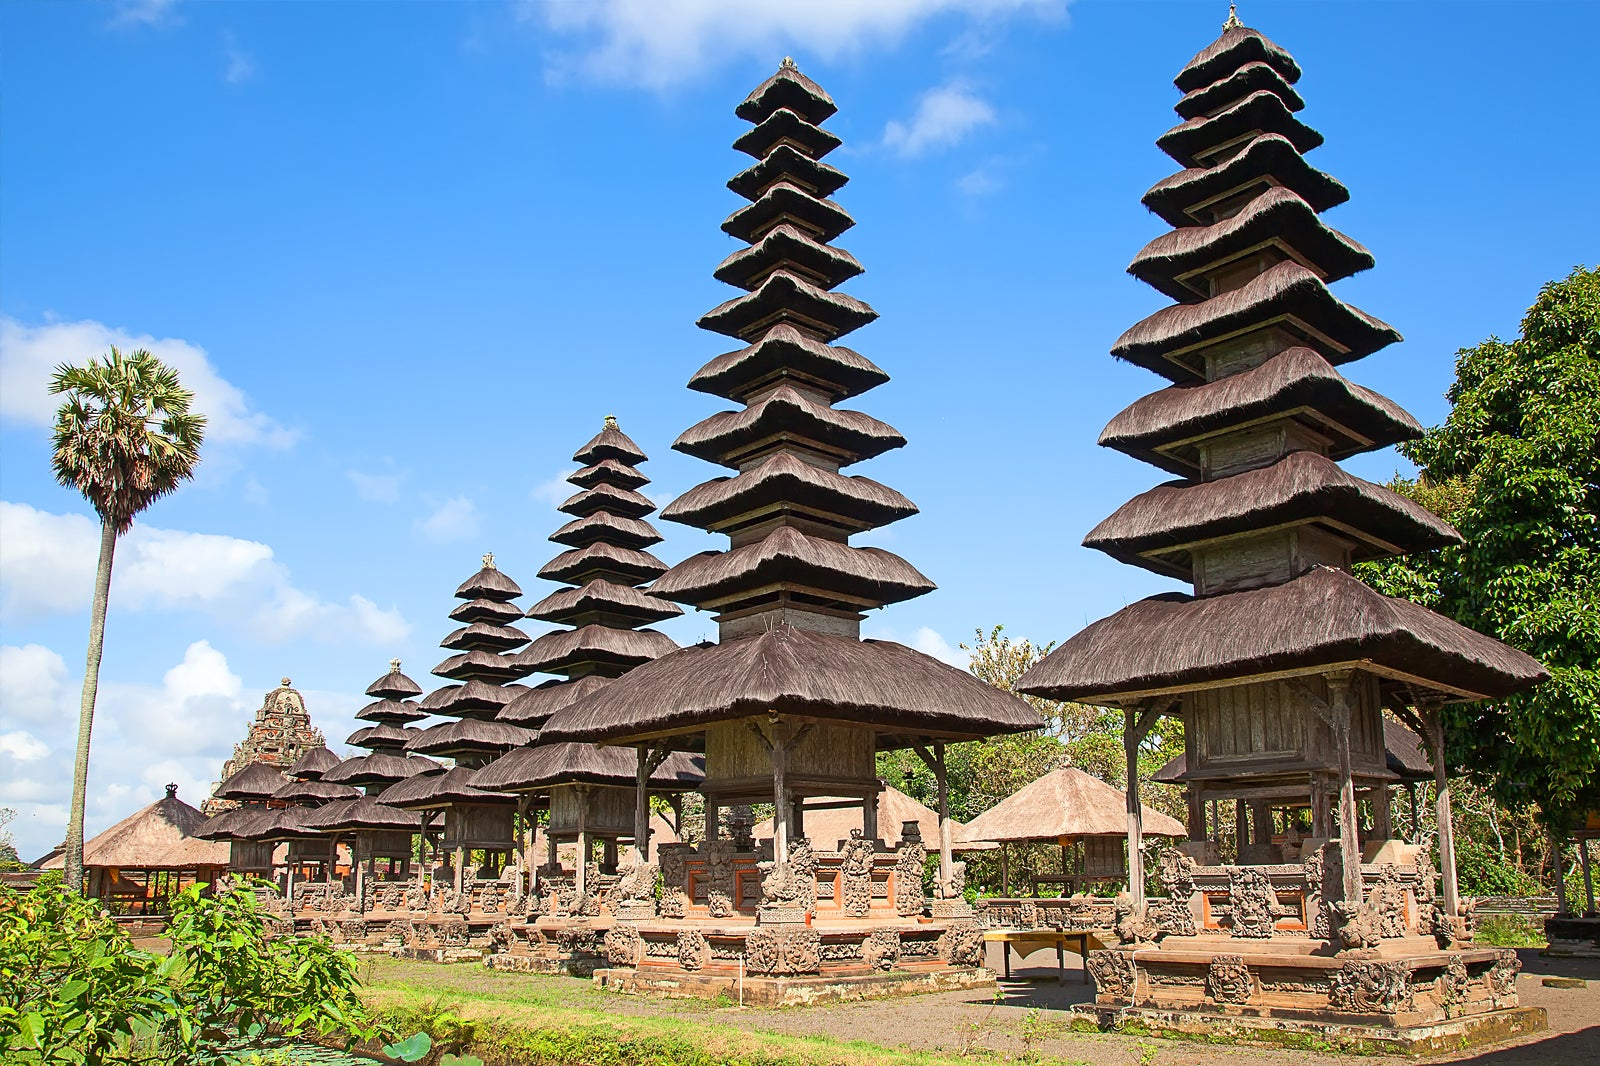 Taman Ayun Temple in Bali - Scenic Balinese Temple and Garden Complex